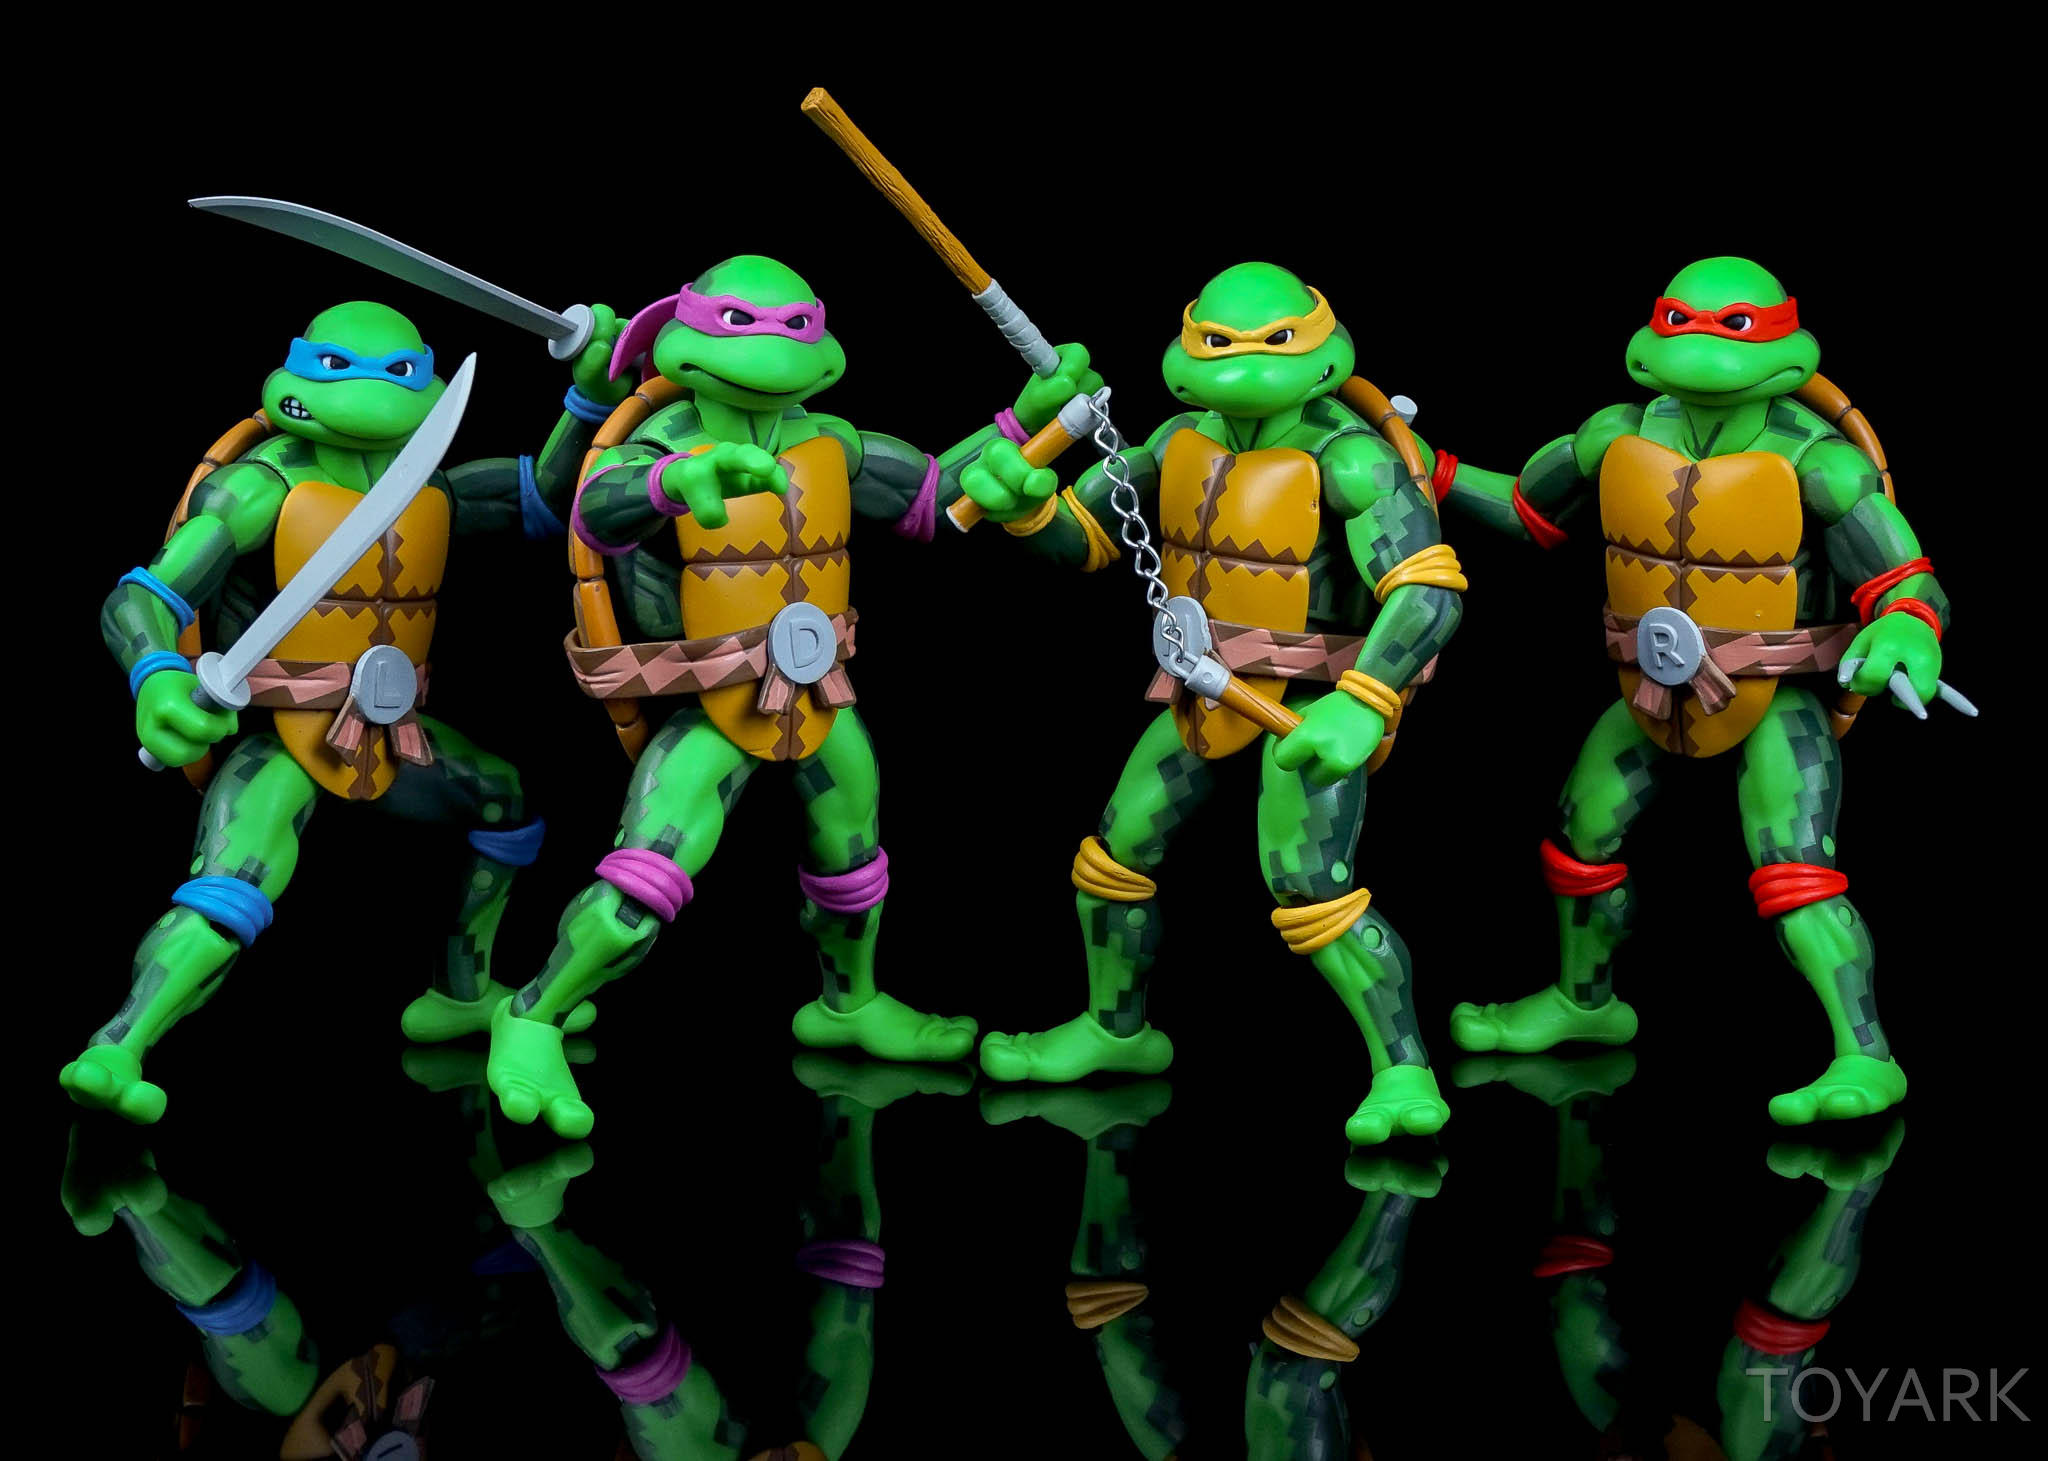 http://news.toyark.com/wp-content/uploads/sites/4/2016/08/SDCC2016-TMNT-Arcade-095.jpg